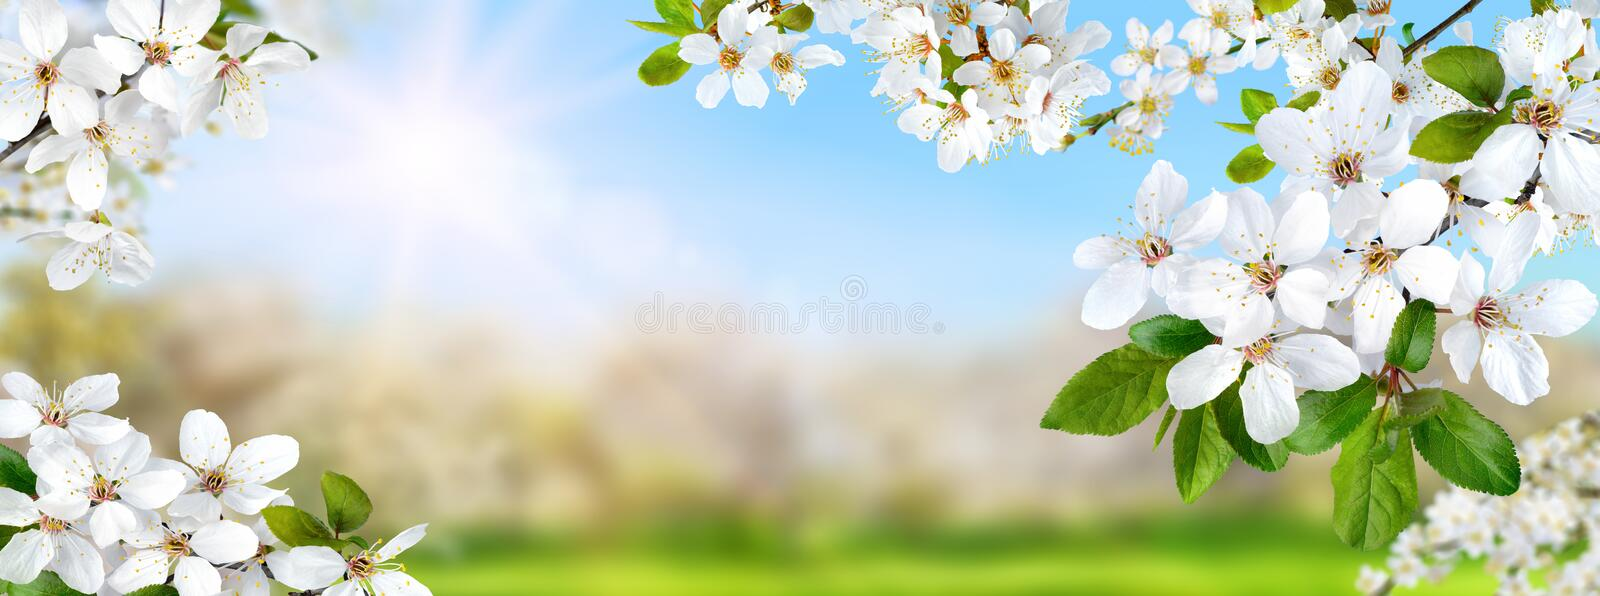 Spring nature composite with white blossoms royalty free stock image